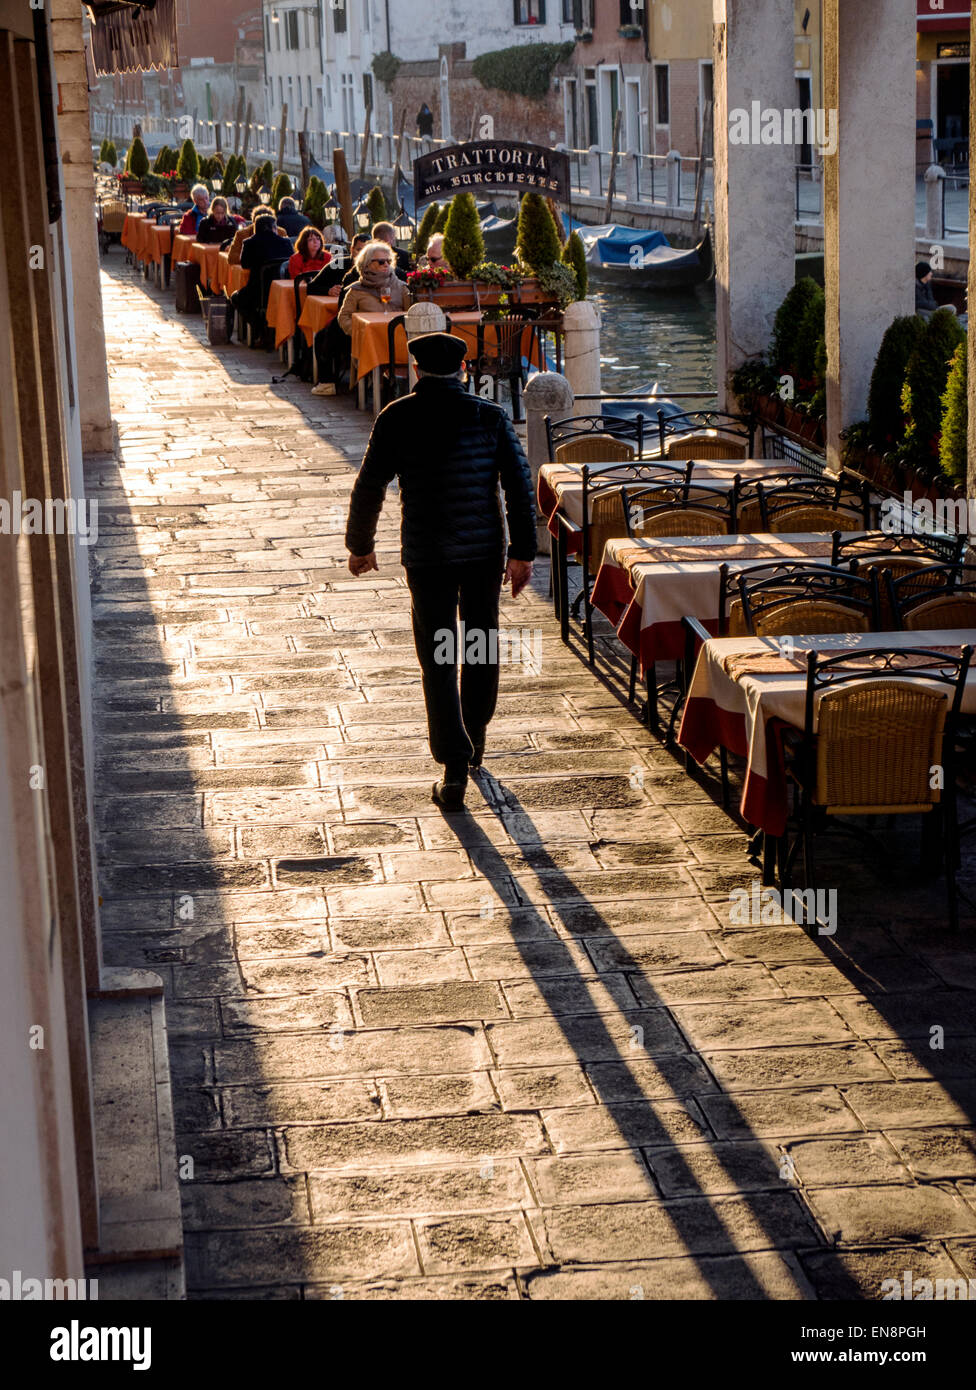 Tourists & locals walking cobblestone paths, Venice, Italy, City of Canals - Stock Image